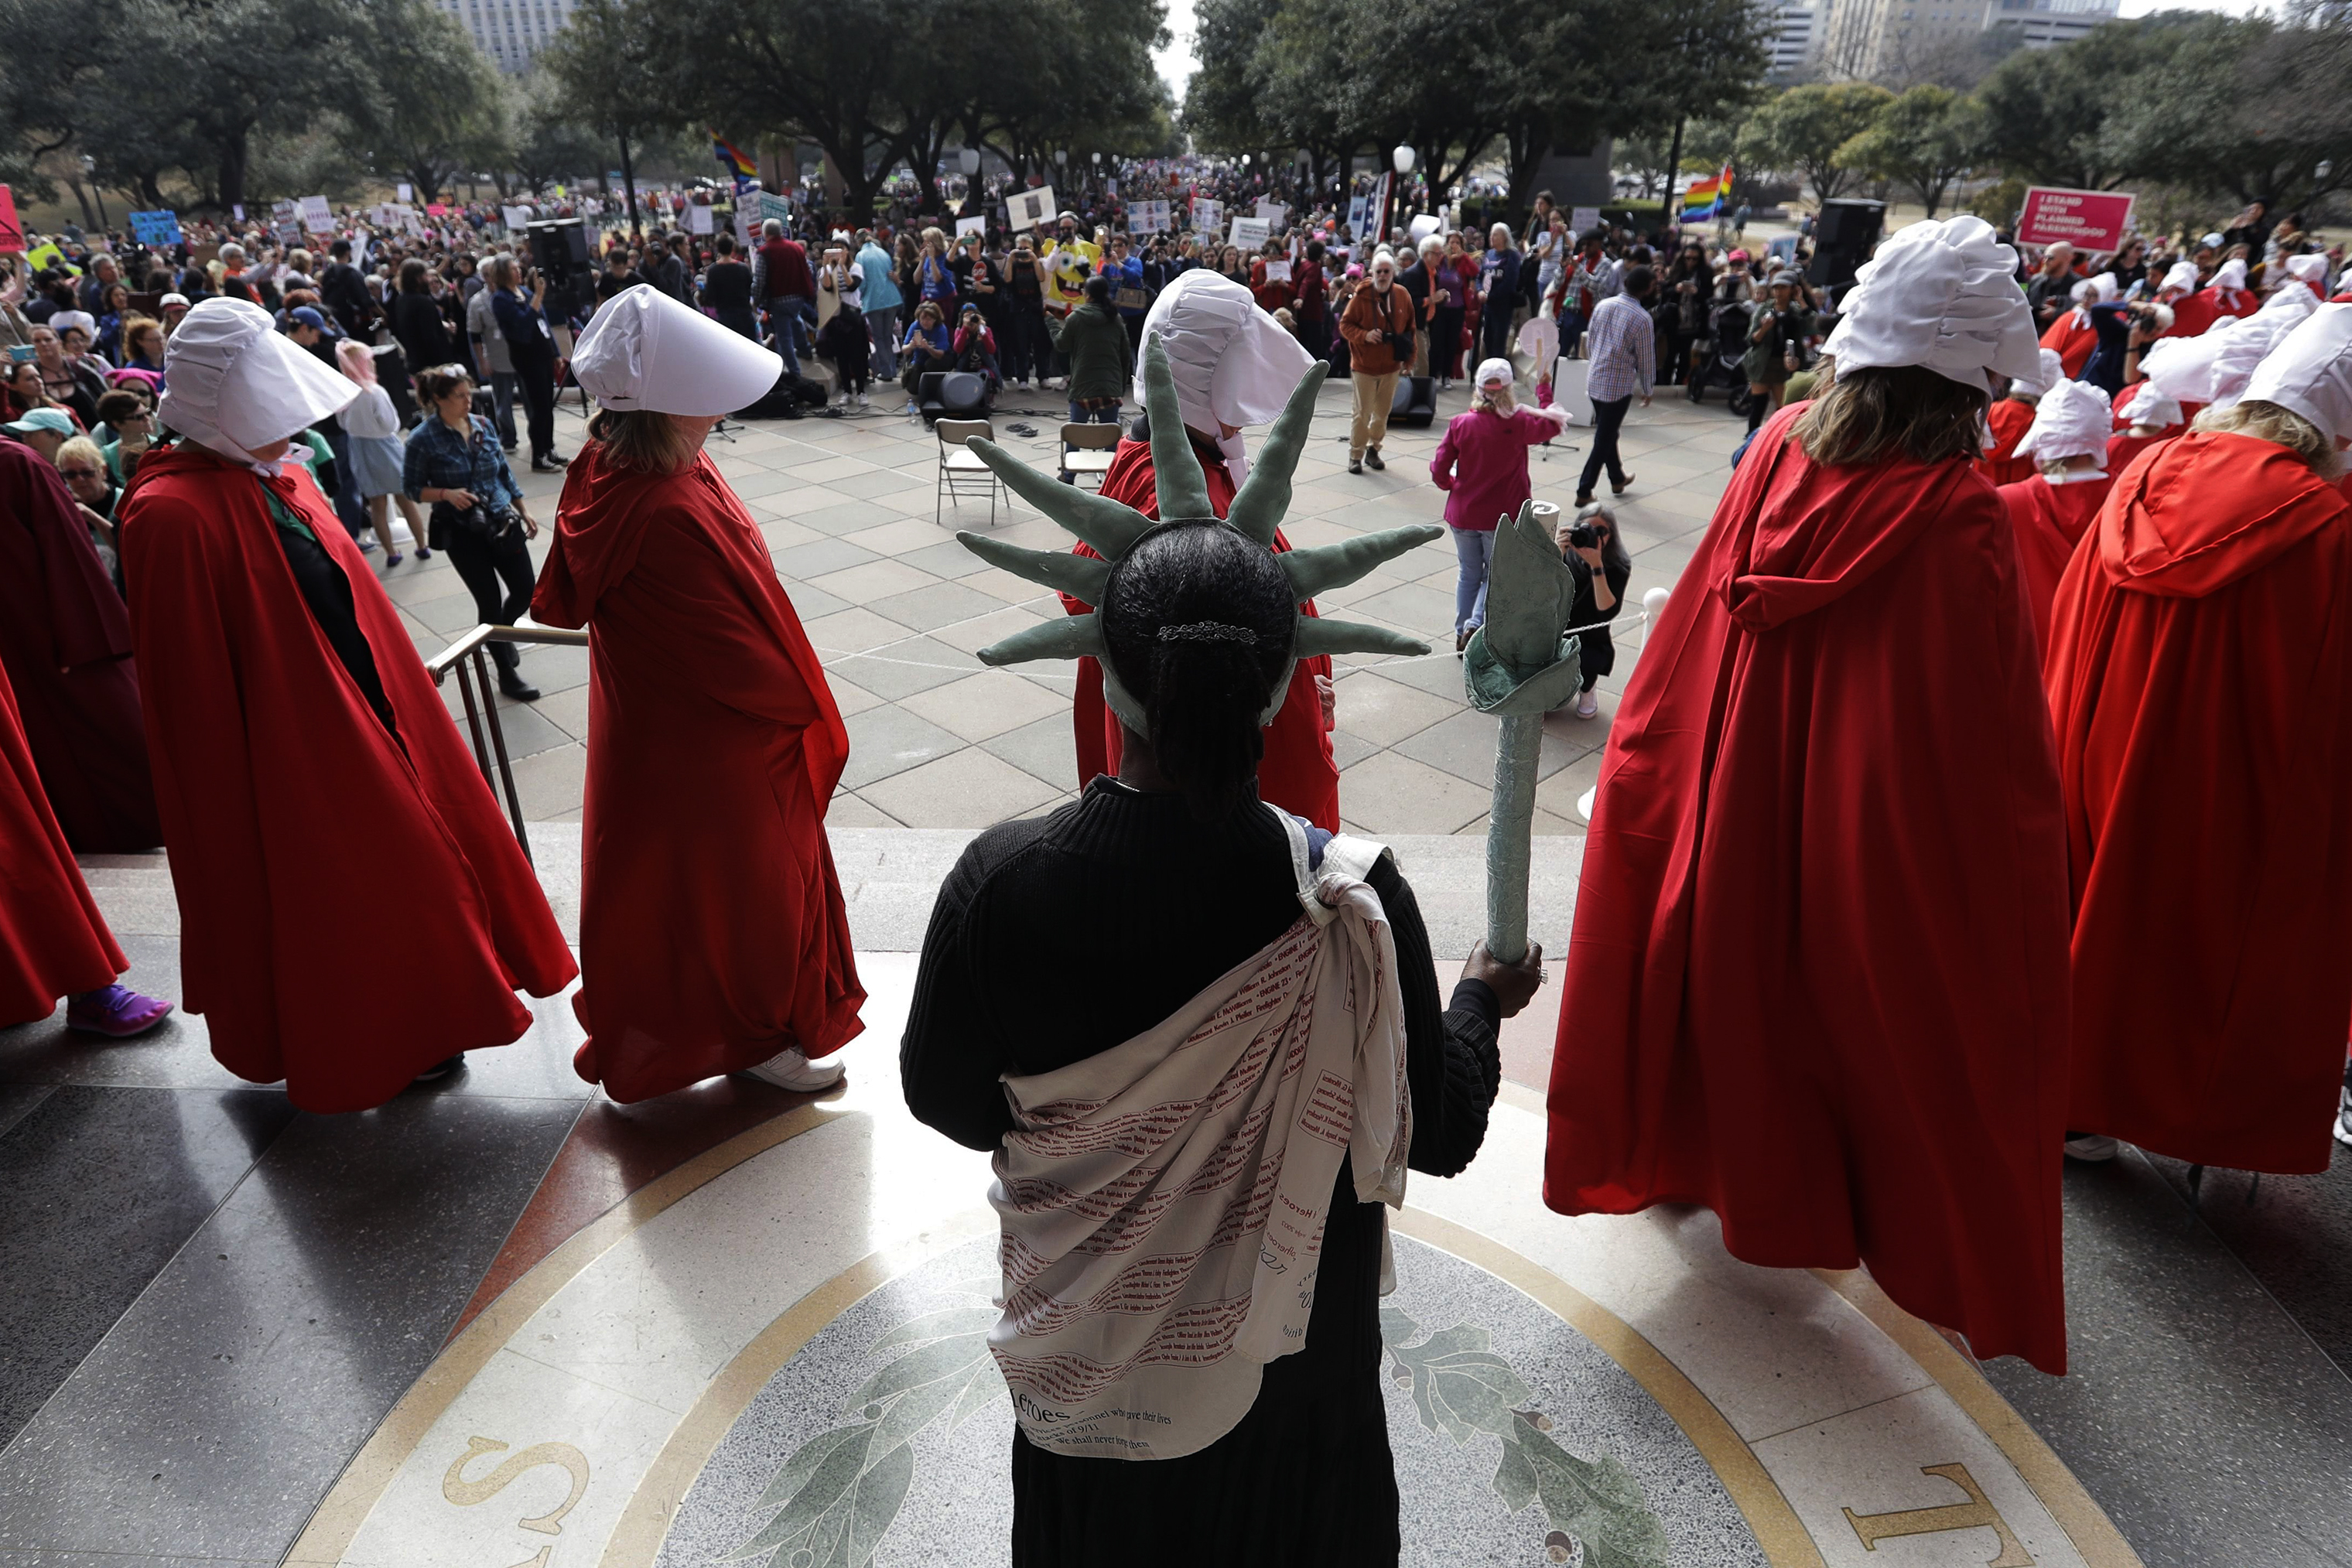 Texas Handmaids at the women's march to the Texas State Capitol in Austin.